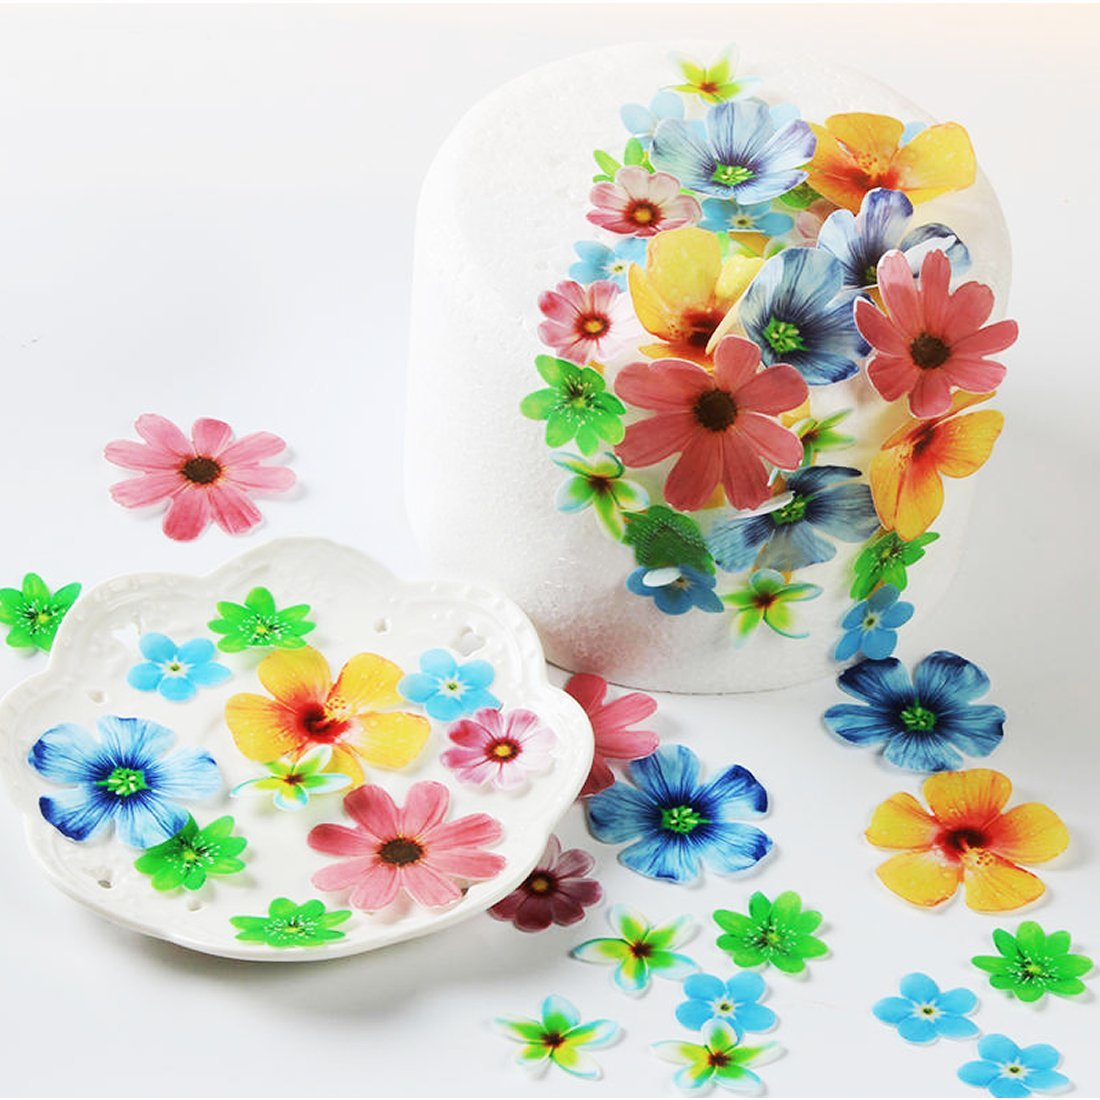 Amazon georld set of 48 edible flowers cupcake toppers wedding amazon georld set of 48 edible flowers cupcake toppers wedding cake birthday party food decoration grocery gourmet food izmirmasajfo